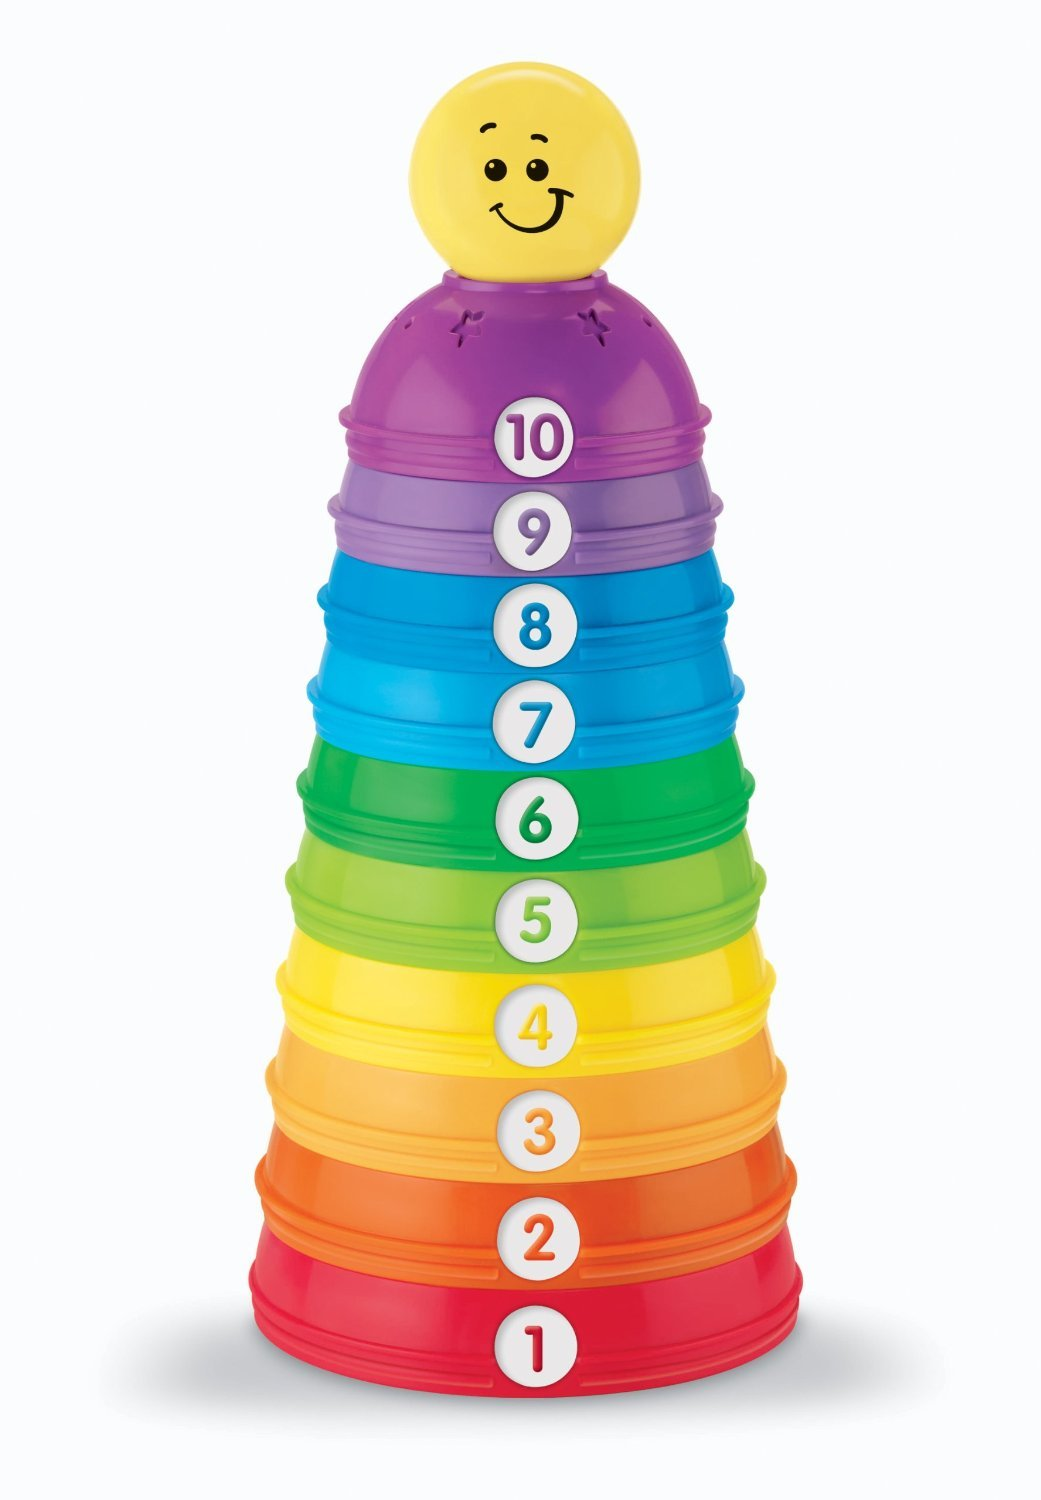 Top 9 Best Baby Stacking Toys Reviews in 2019 4